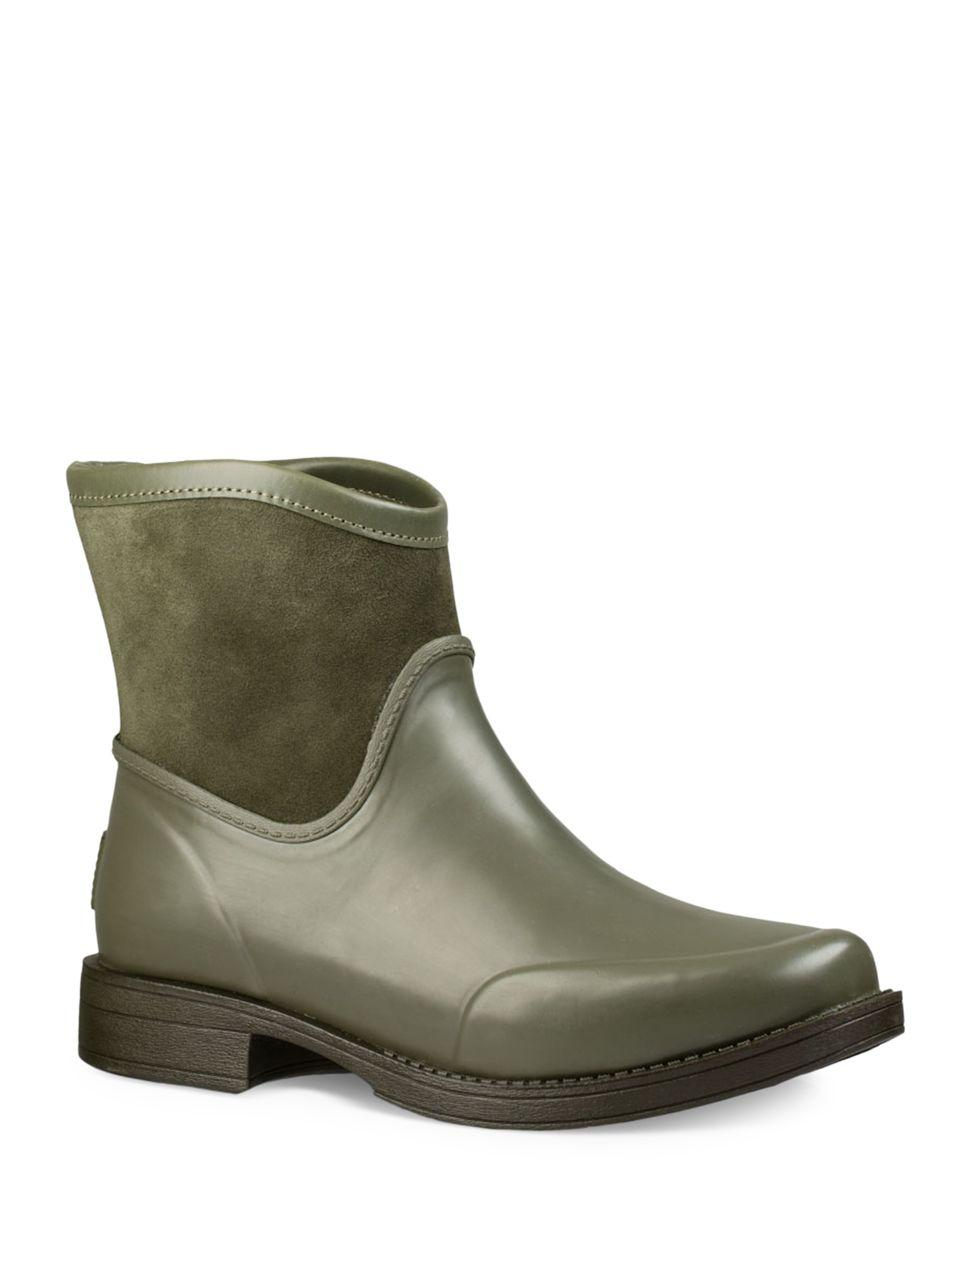 80345bbd871 Lyst - UGG Paxton Leather And Suede Boots in Green